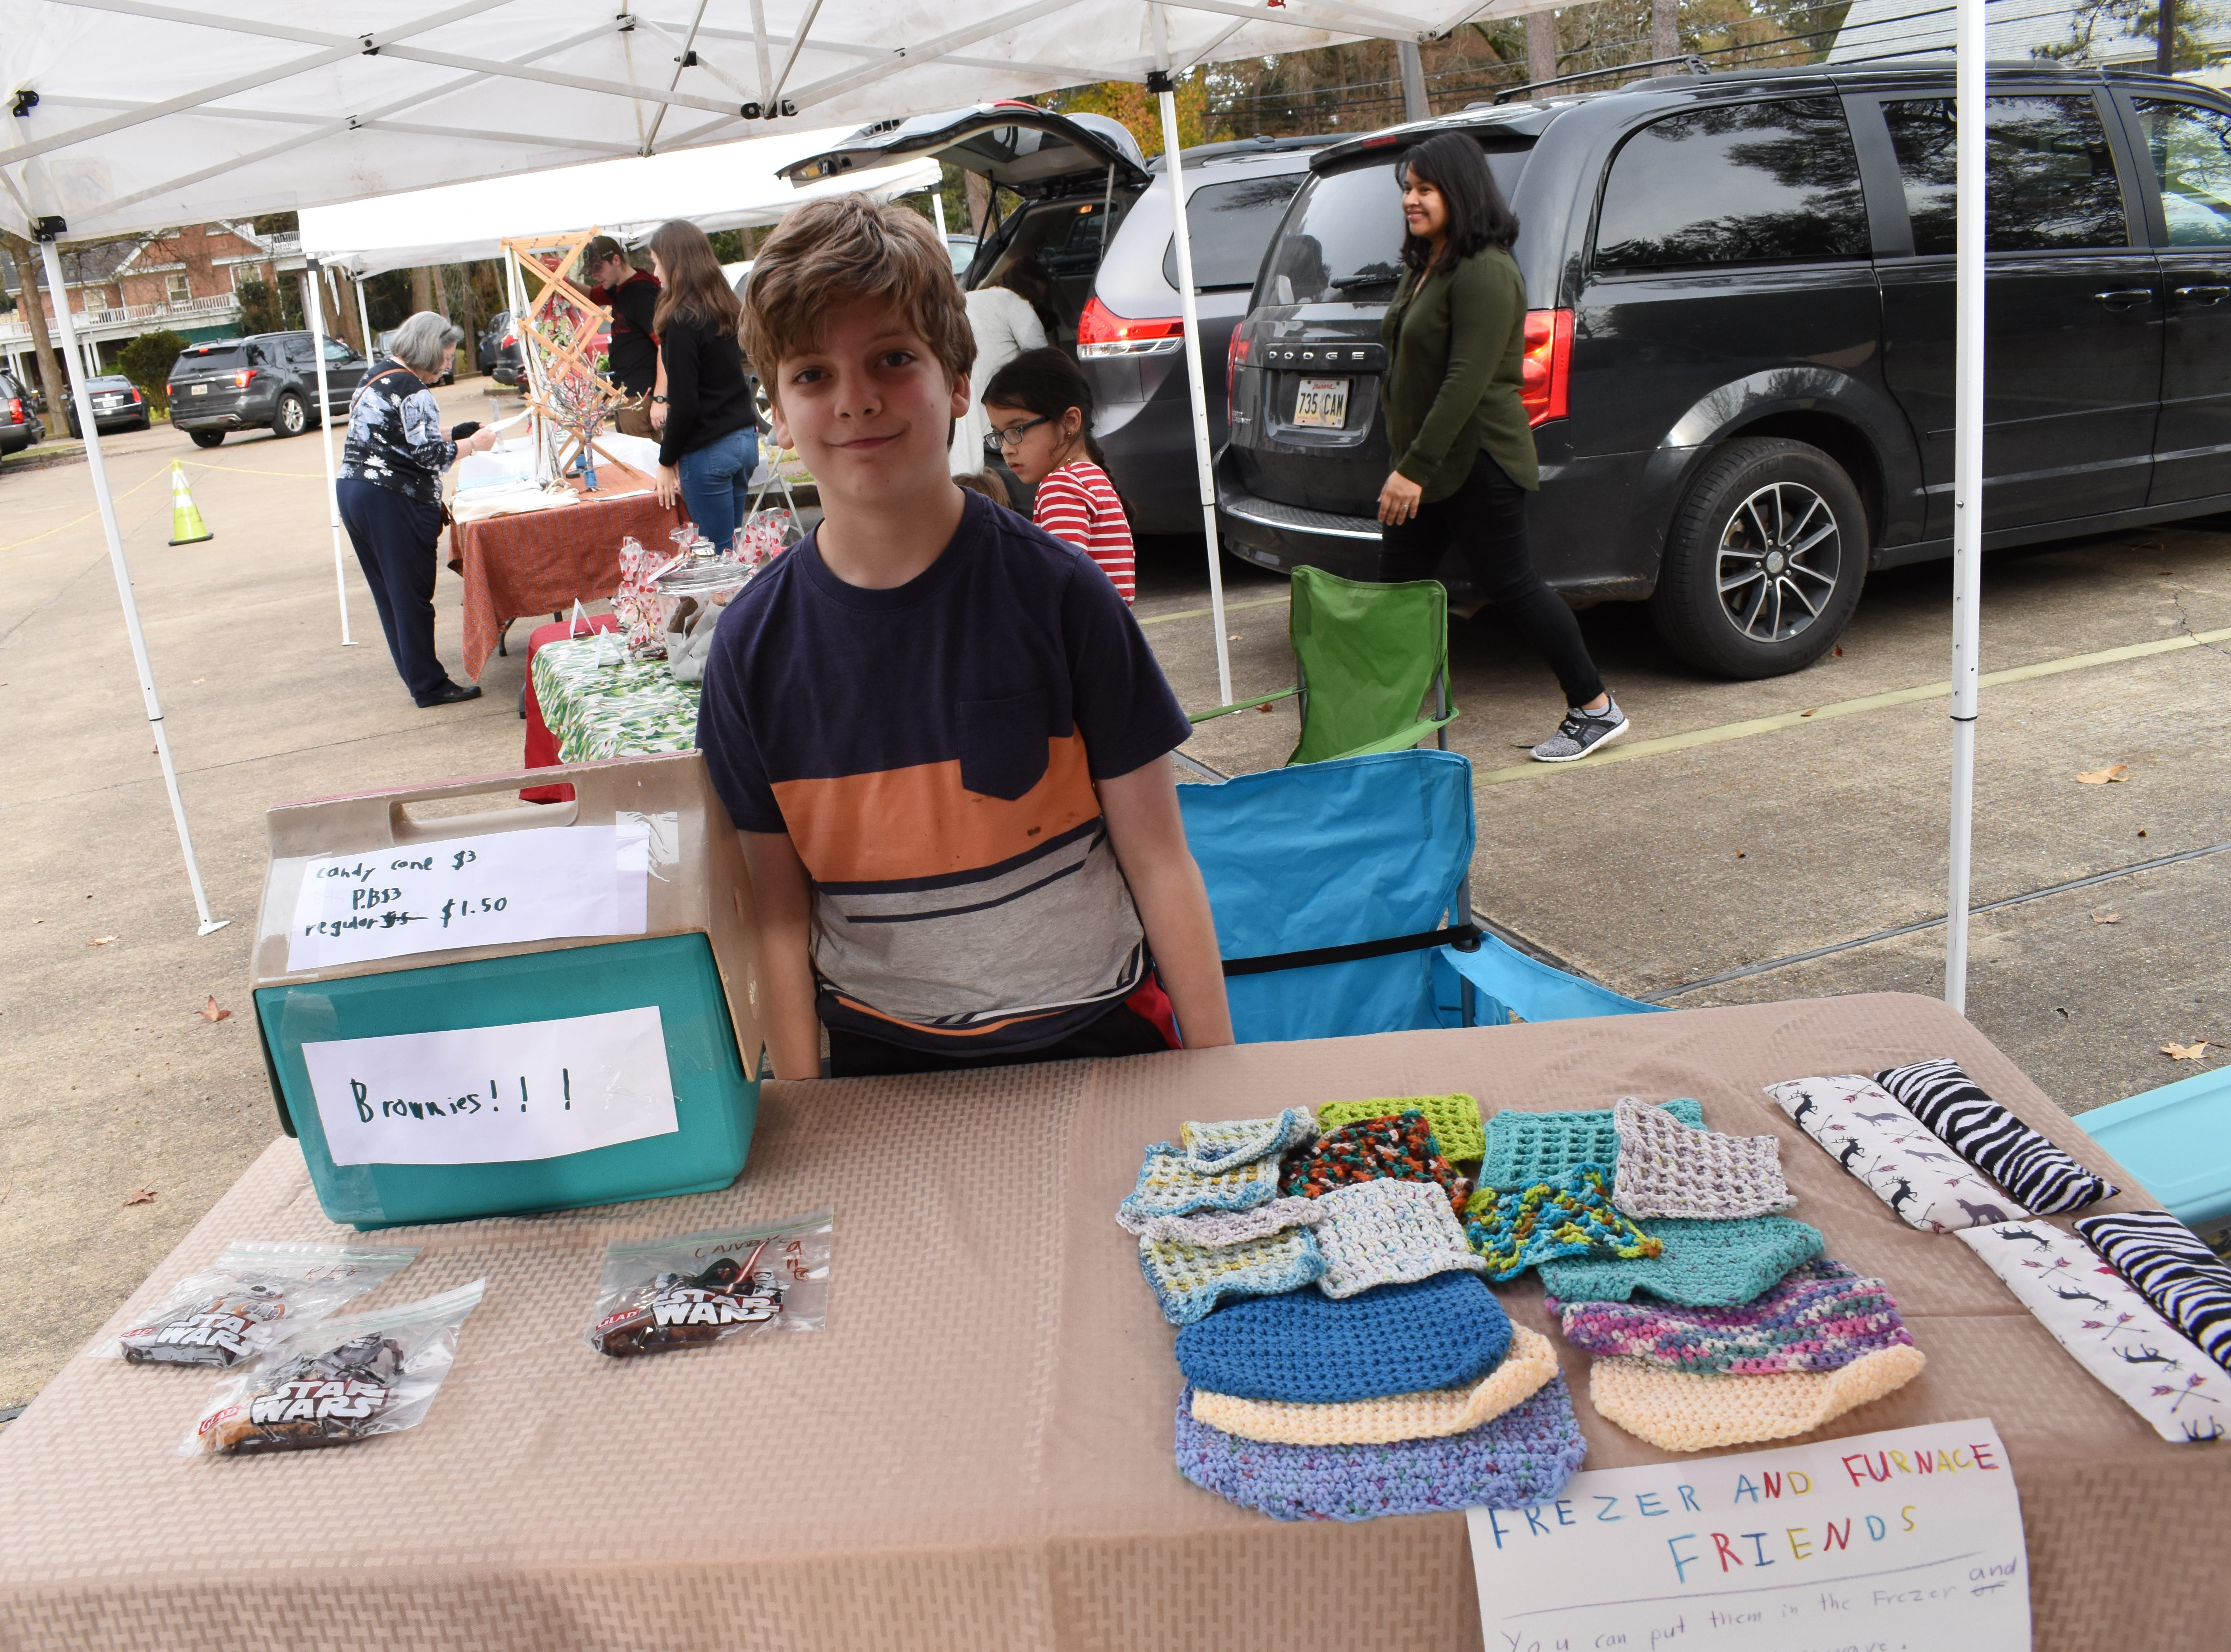 "On Tuesday, Dec. 18, 2018, children set up mini-booths at the Alexandria Farmers Market ""Holiday Market"" to sell items they made. About 10 booths were manned by 23 children. The youngest was four and the oldest was 15. The mini-vendors were selling items such as wooden ornaments and crafts; soaps, hair products; jewelry; locally grown turnips and mustard greens; wands; cookies and sweets; embroidered kitchen towels; burp rags, cotton wash cloths, and freezer/furnace friends which are rice filled cloth bags for aches or pains. Allison Tohme, market manager, said this was the first time the mini-vendors would be able to accept credit cards through the market's welcome booth and support from the Central Louisiana Economic Development Alliance (CLEDA). The Alexandria Farmers Market is held from 3-6 p.m. every Tuesday in the parking lot on Jackson Street across from First United Methodist Church located at 2727 Jackson Street."